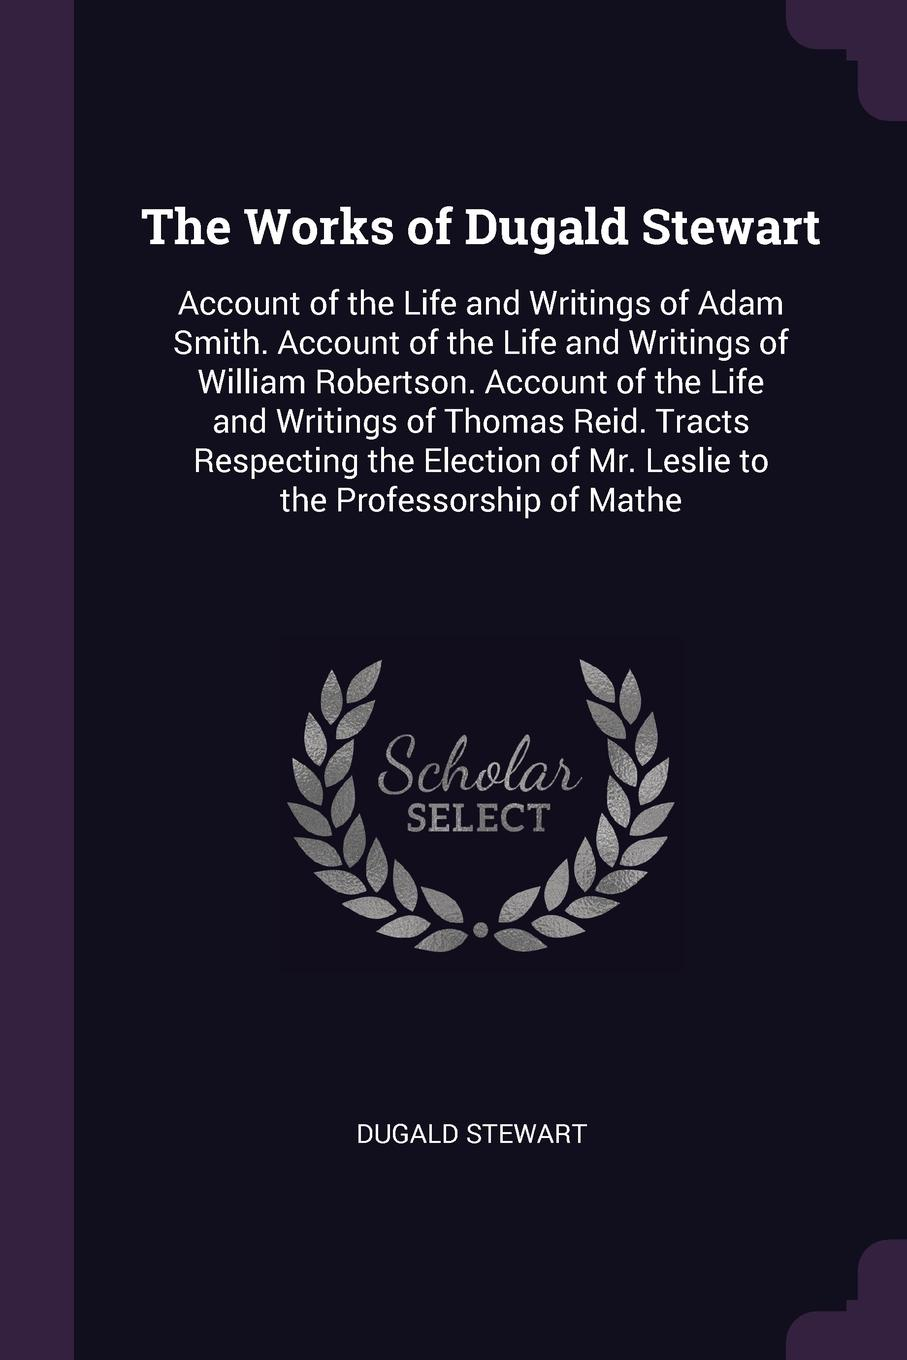 The Works of Dugald Stewart. Account of the Life and Writings of Adam Smith. Account of the Life and Writings of William Robertson. Account of the Life and Writings of Thomas Reid. Tracts Respecting the Election of Mr. Leslie to the Professorship ...